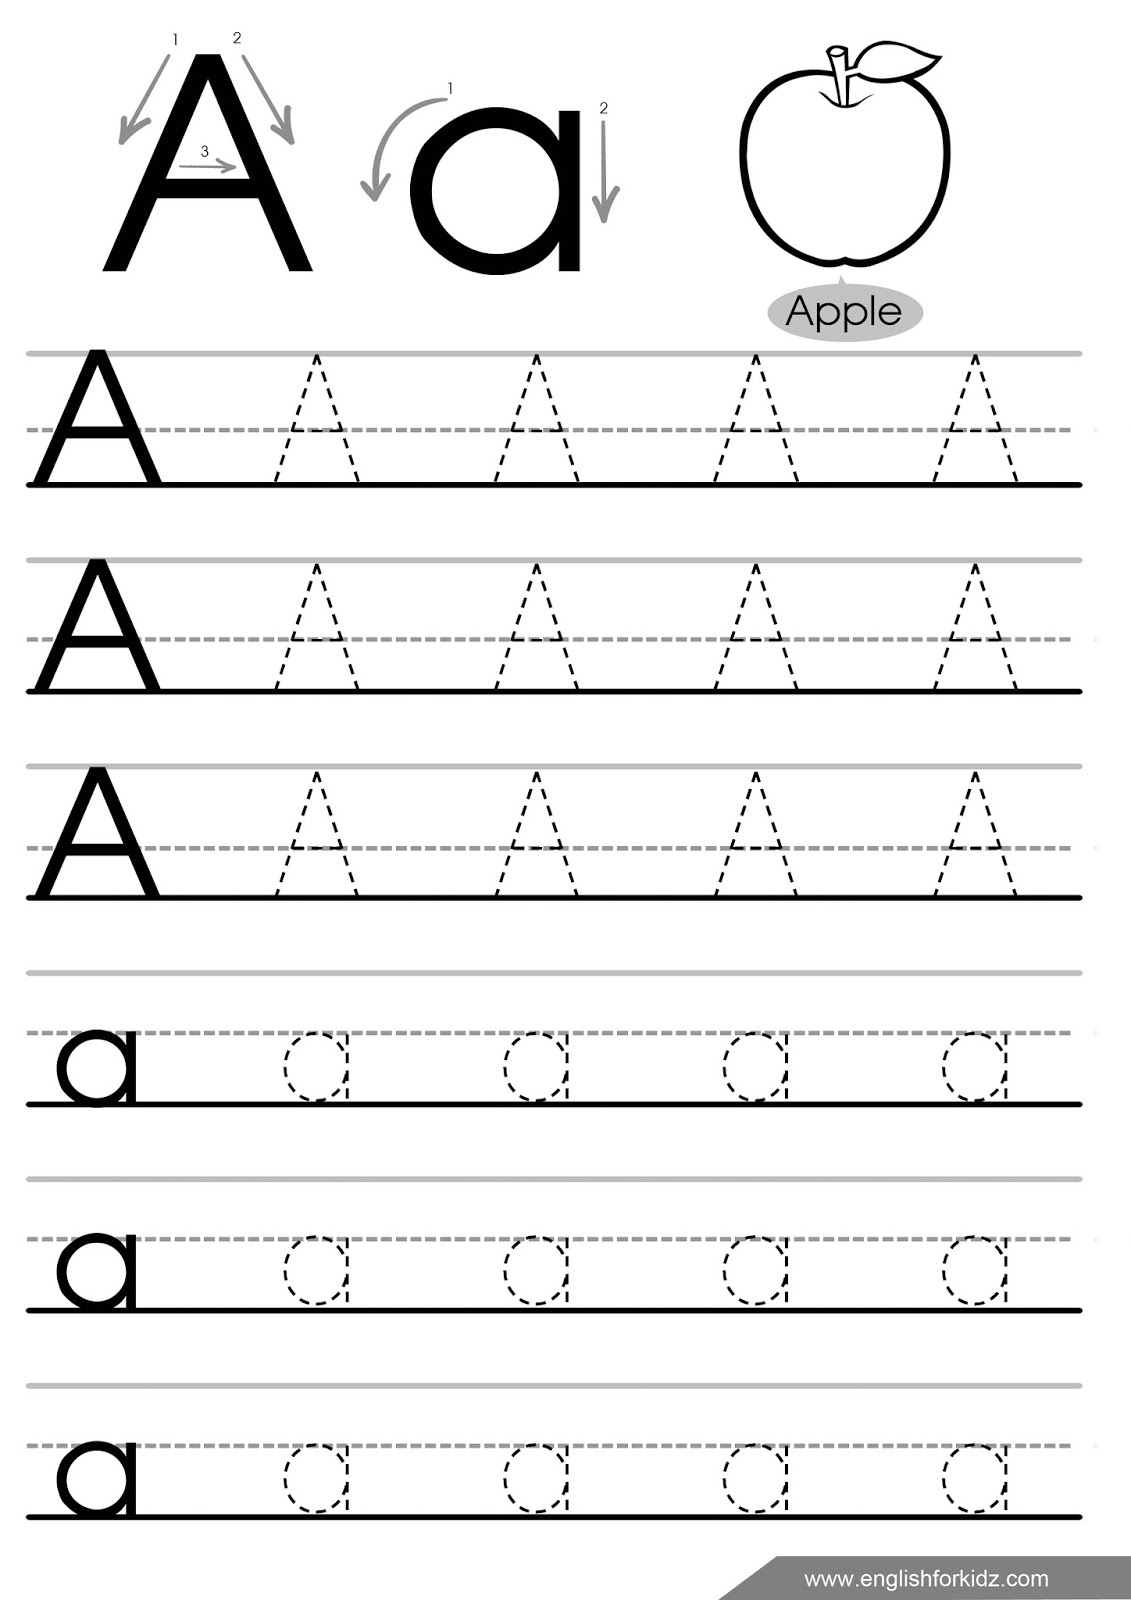 Letter Tracing Worksheets (Letters A - J) regarding Alphabet Tracing And Writing Worksheets Pdf